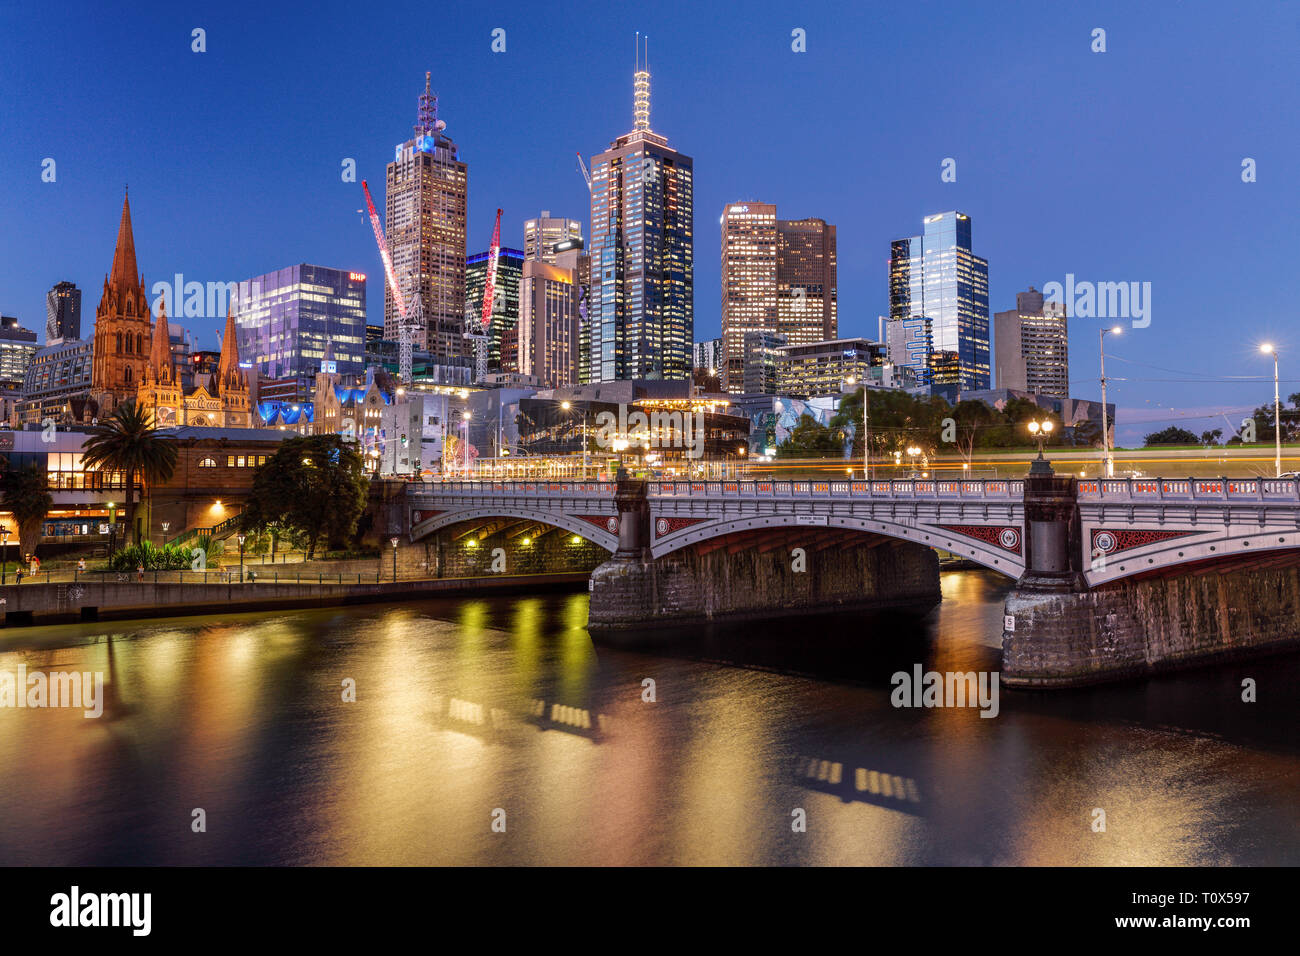 The iconic viewpoint of Melbourne's CBD from Southbank, Victoria, Australia. - Stock Image